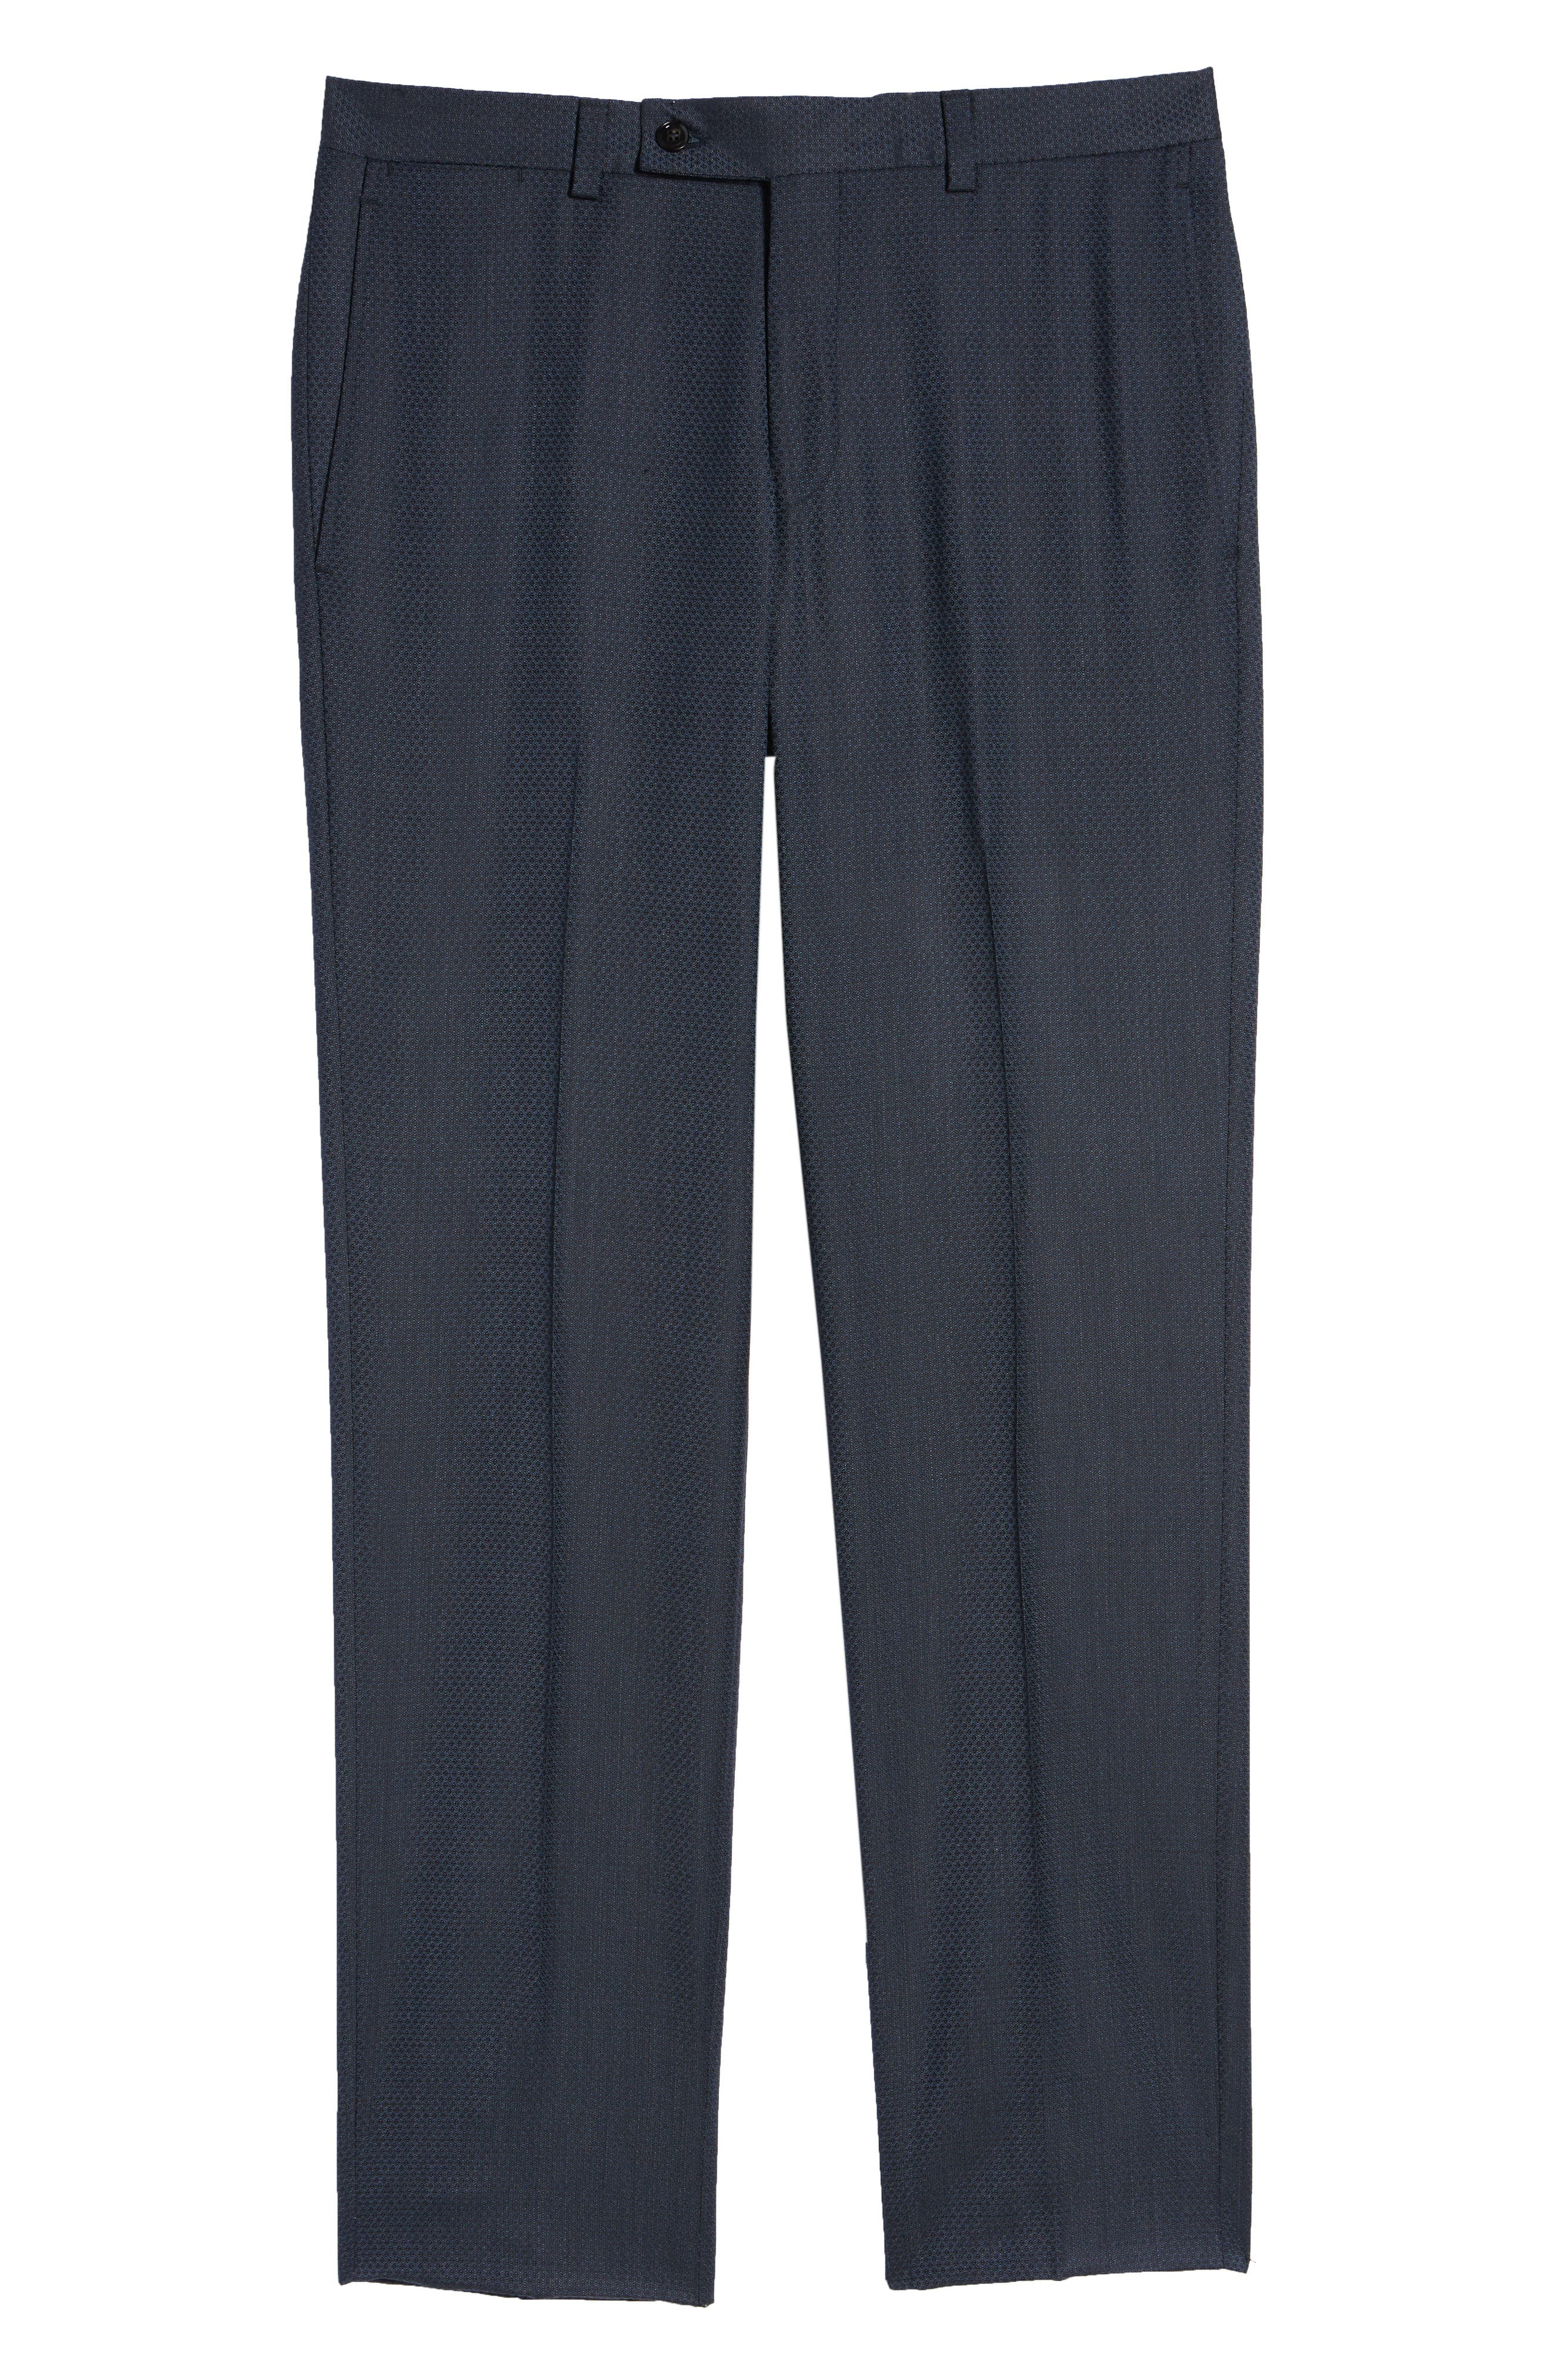 Jefferson Flat Front Solid Wool Trousers,                             Alternate thumbnail 6, color,                             400